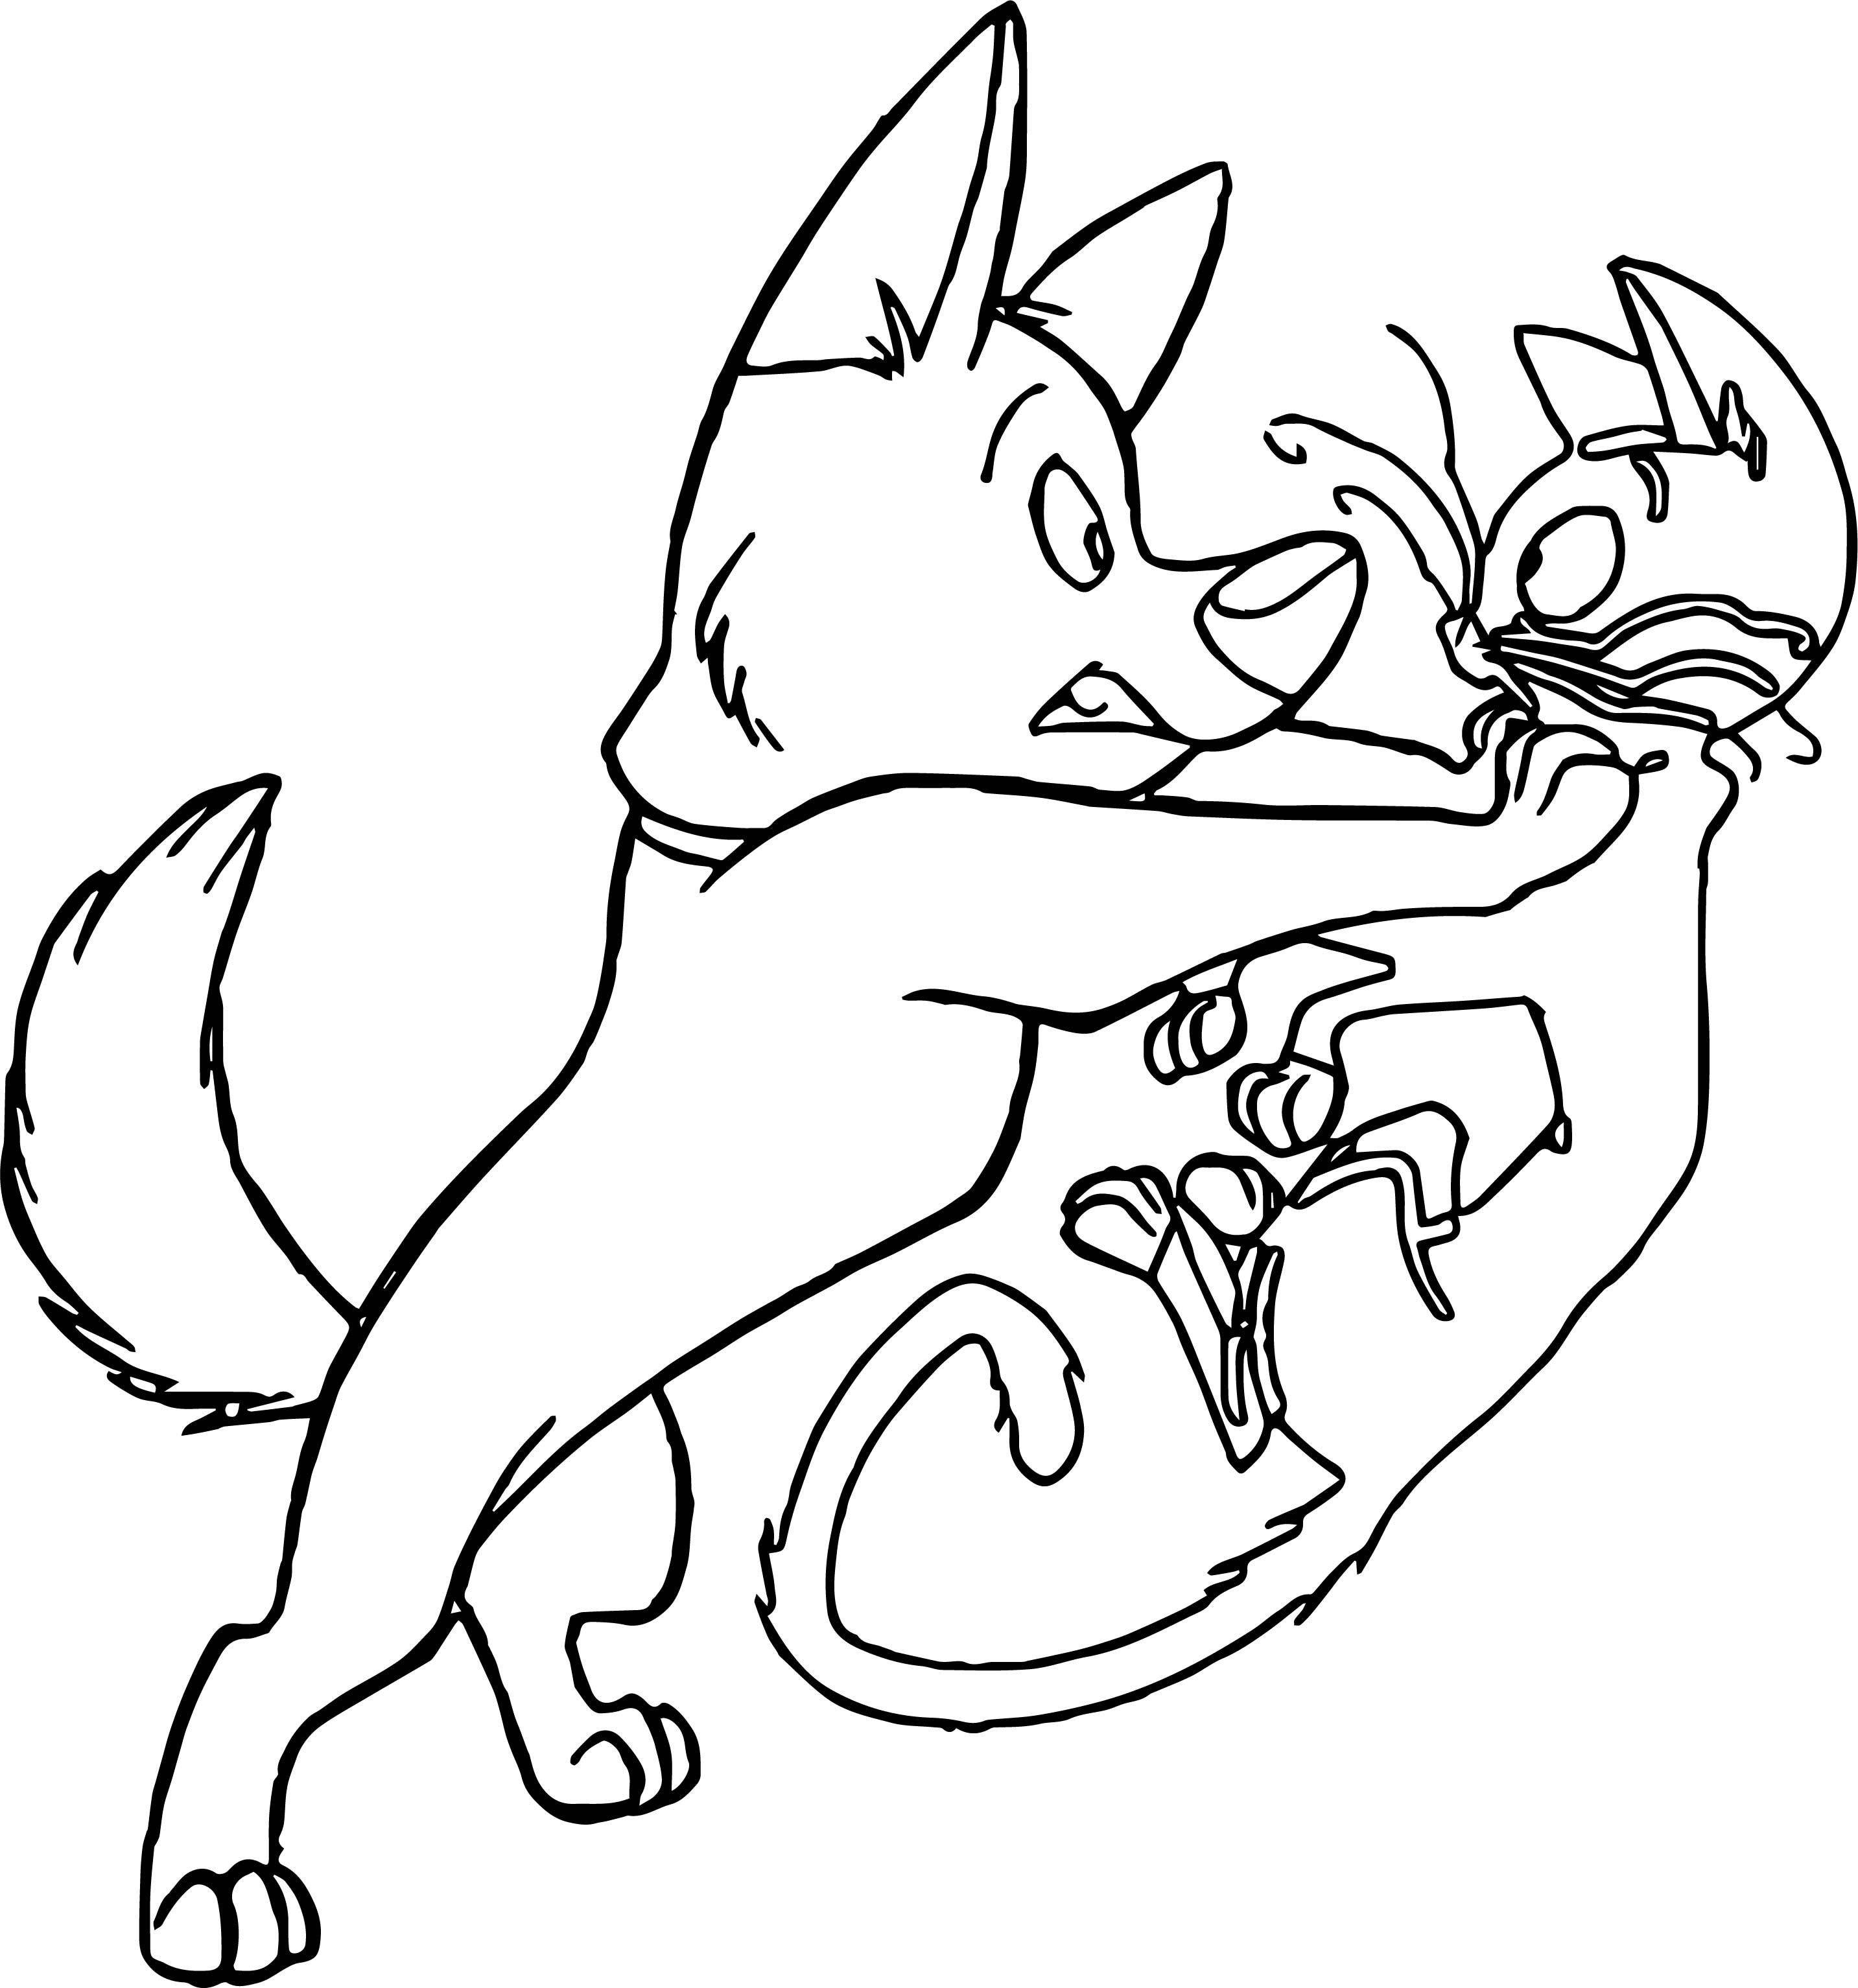 Cool Bolt Dog Cat Where Coloring Pages